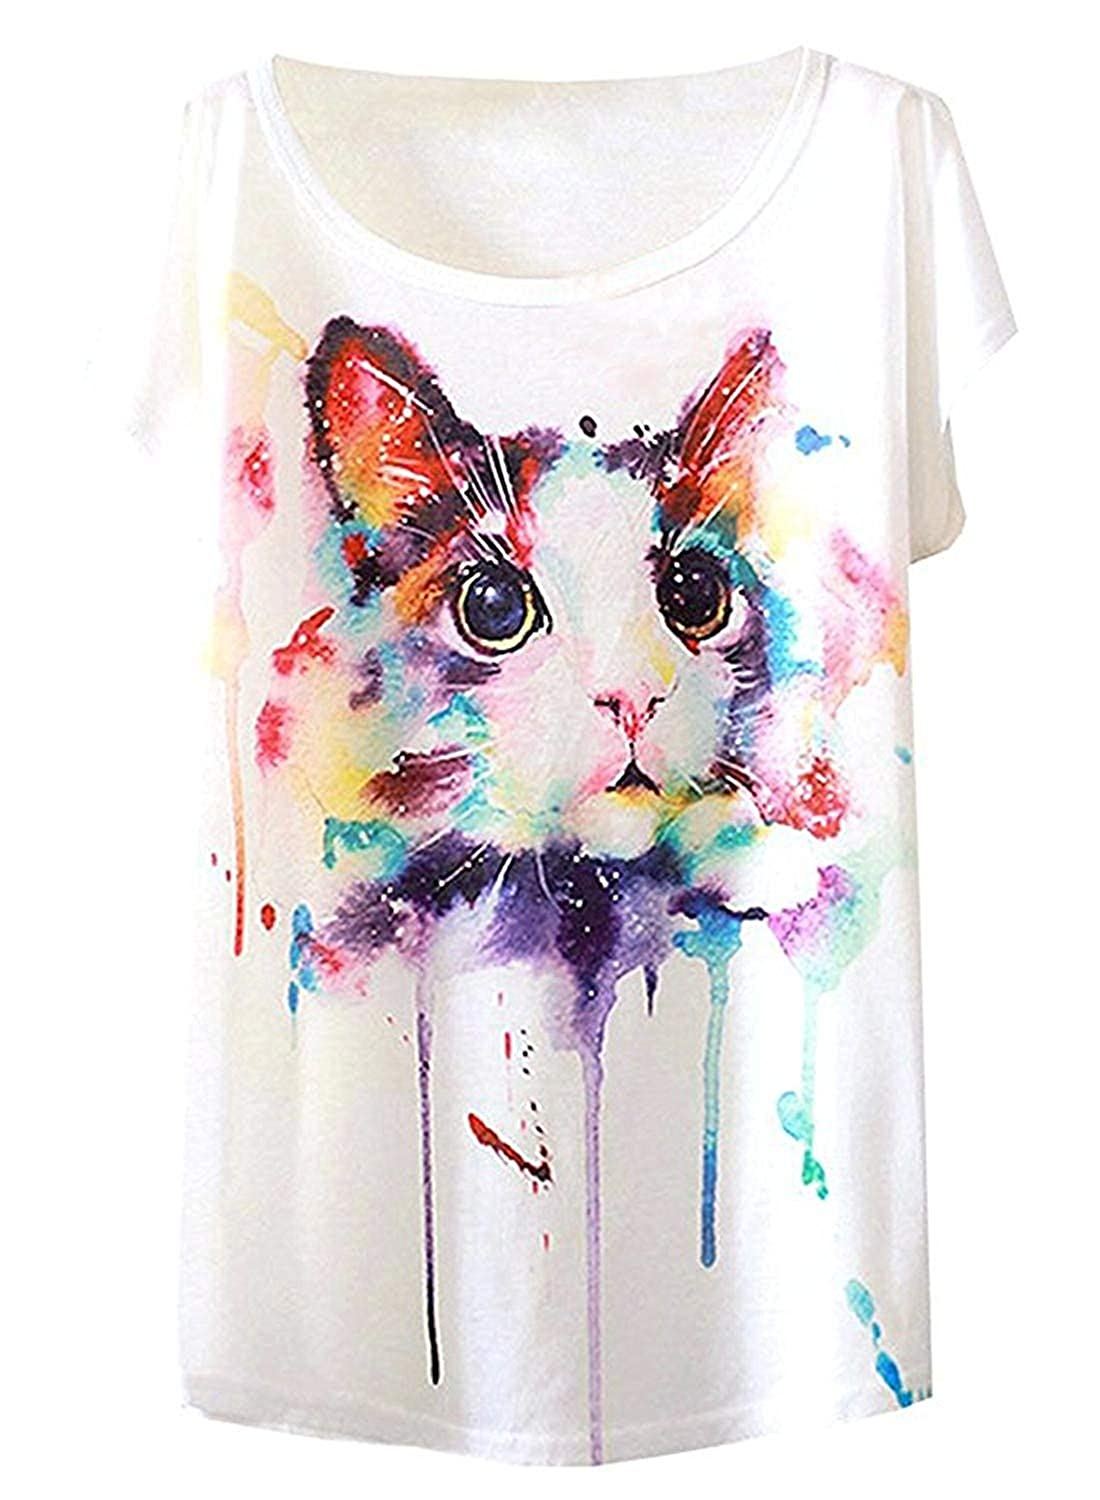 1f084782 Doballa Women's Graphic Cute Cup Cat Abstract Paint Splatter Print Round  Neck Tee Short Sleeve T Shirt Tops at Amazon Women's Clothing store: